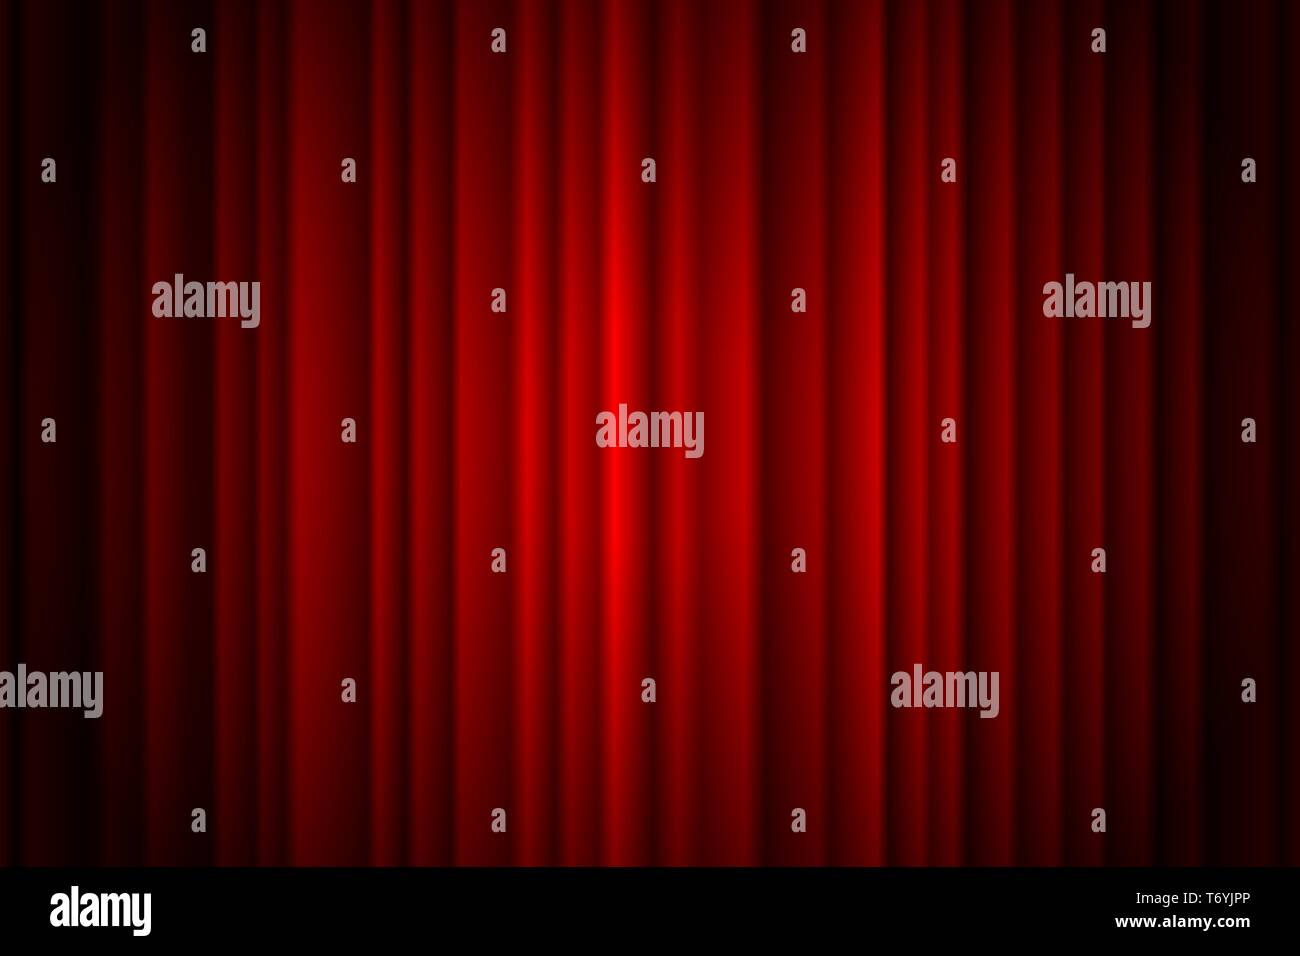 Closed red curtain stage background spotlight beam illuminated. Theatrical drapes. Vector illustration EPS 10 - Stock Vector